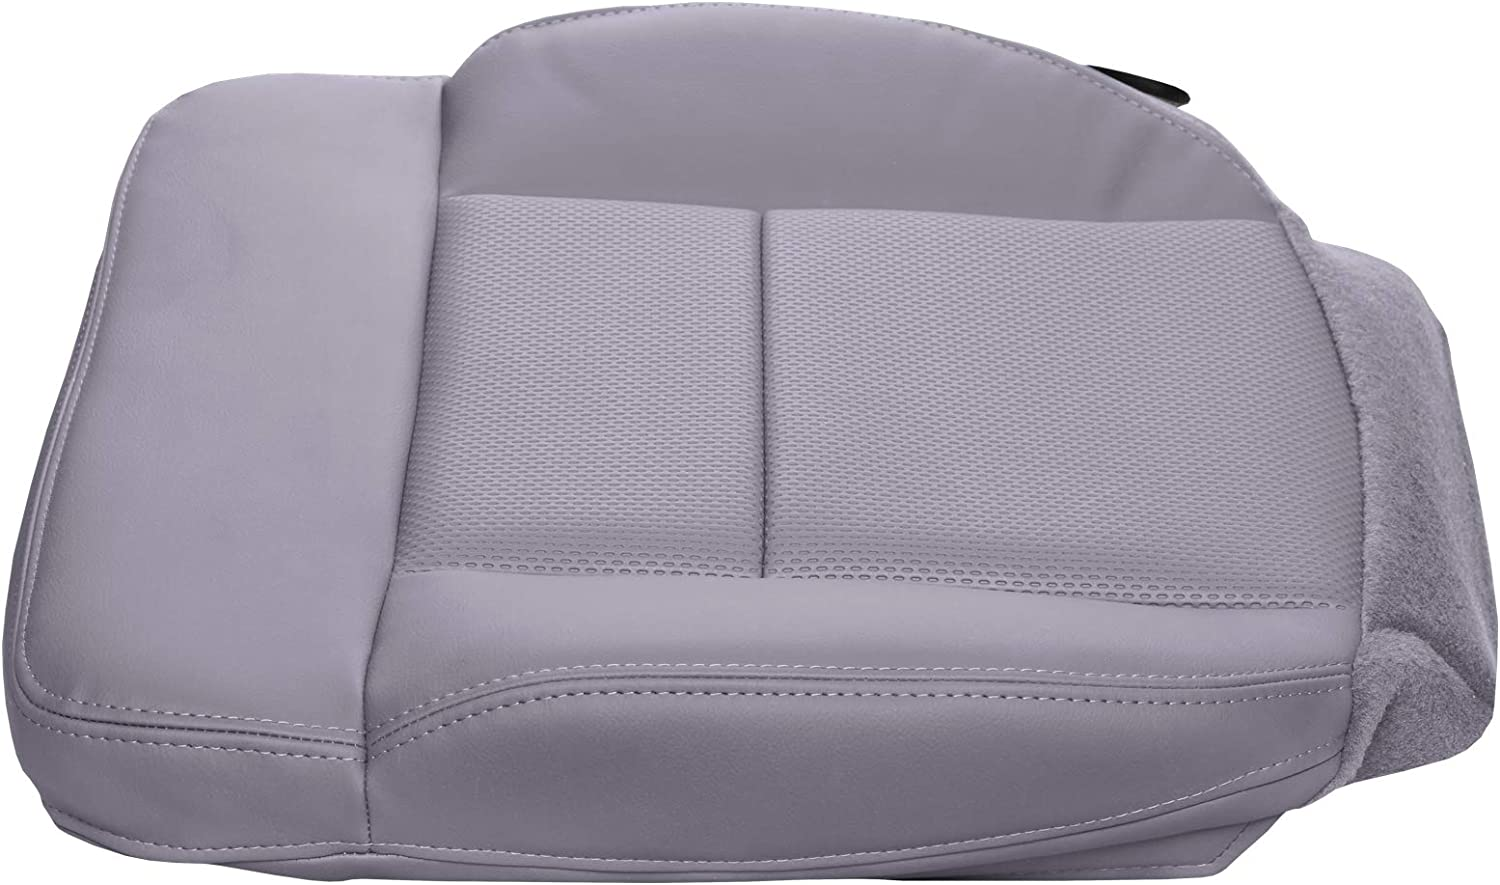 2004 To 2008 Ford F-150 XL FX4  Driver Bottom Seat  Cover Gray Vinyl XLT STX